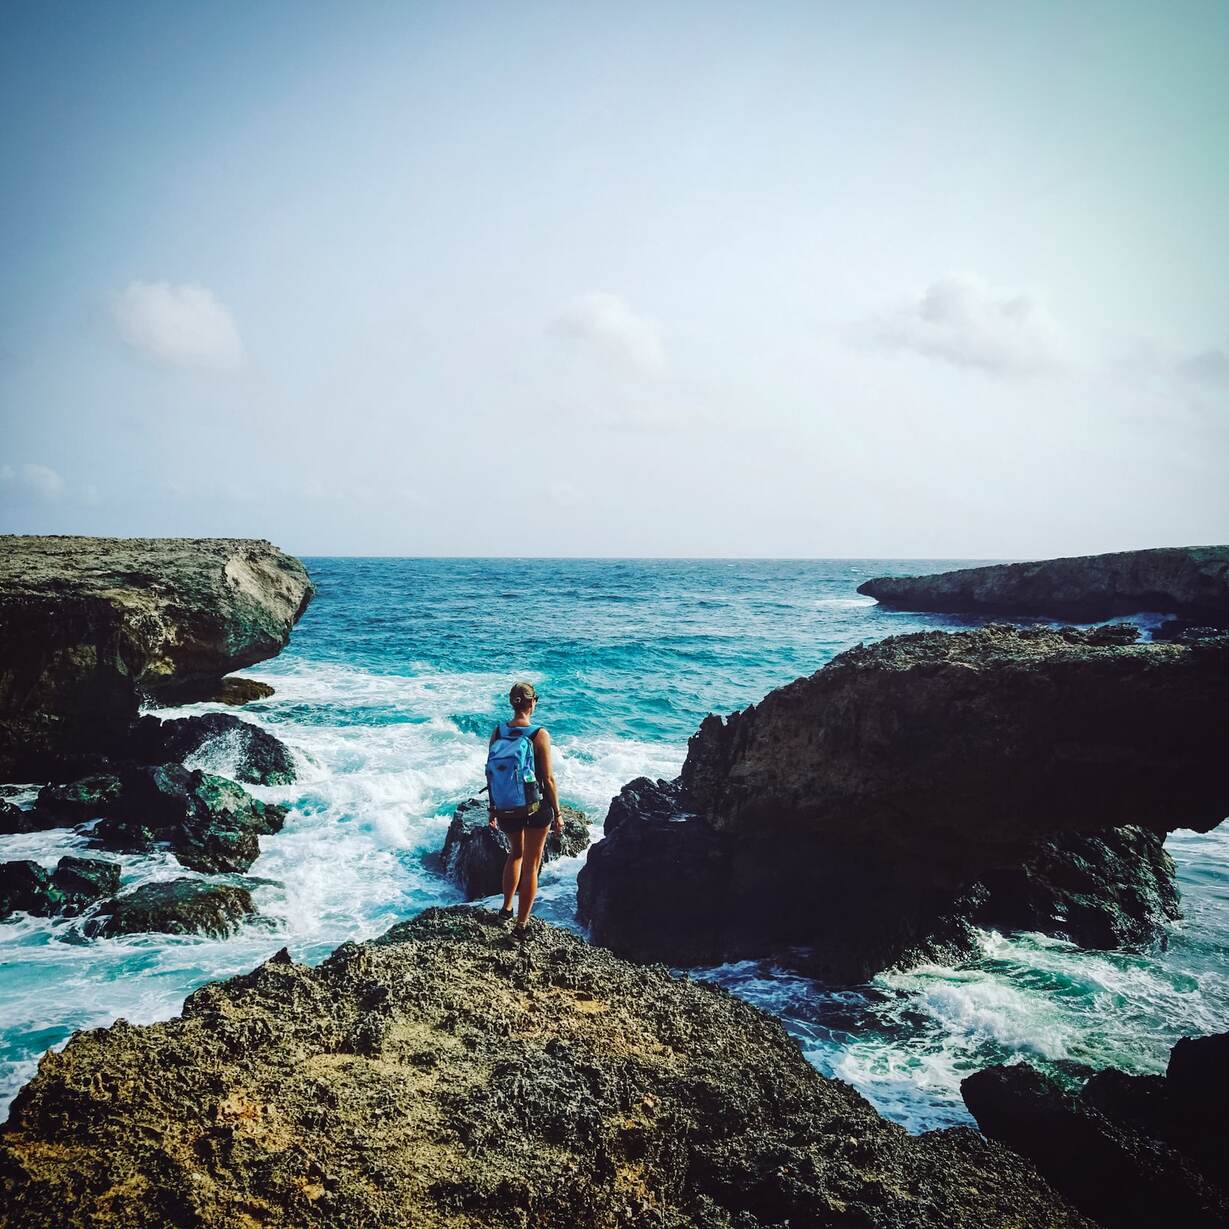 A woman standing on the rocks looking out over the horizon on a rocky coast in Aruba